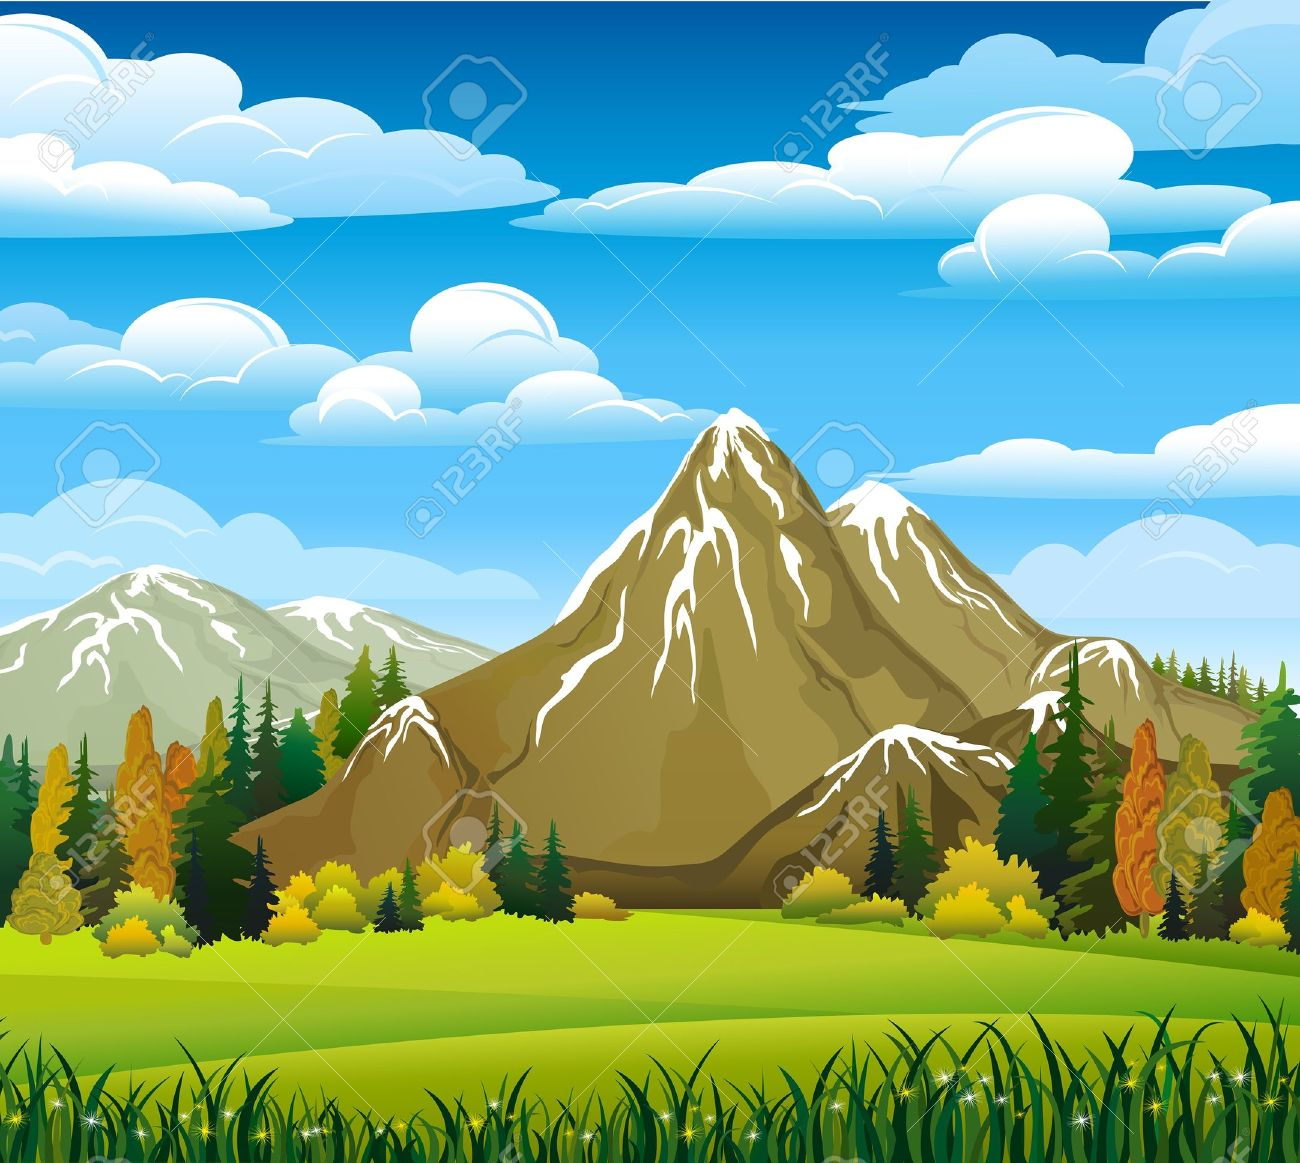 Autumn landscape with meadow, forest and mountains on a cloudy sky background - 10673808